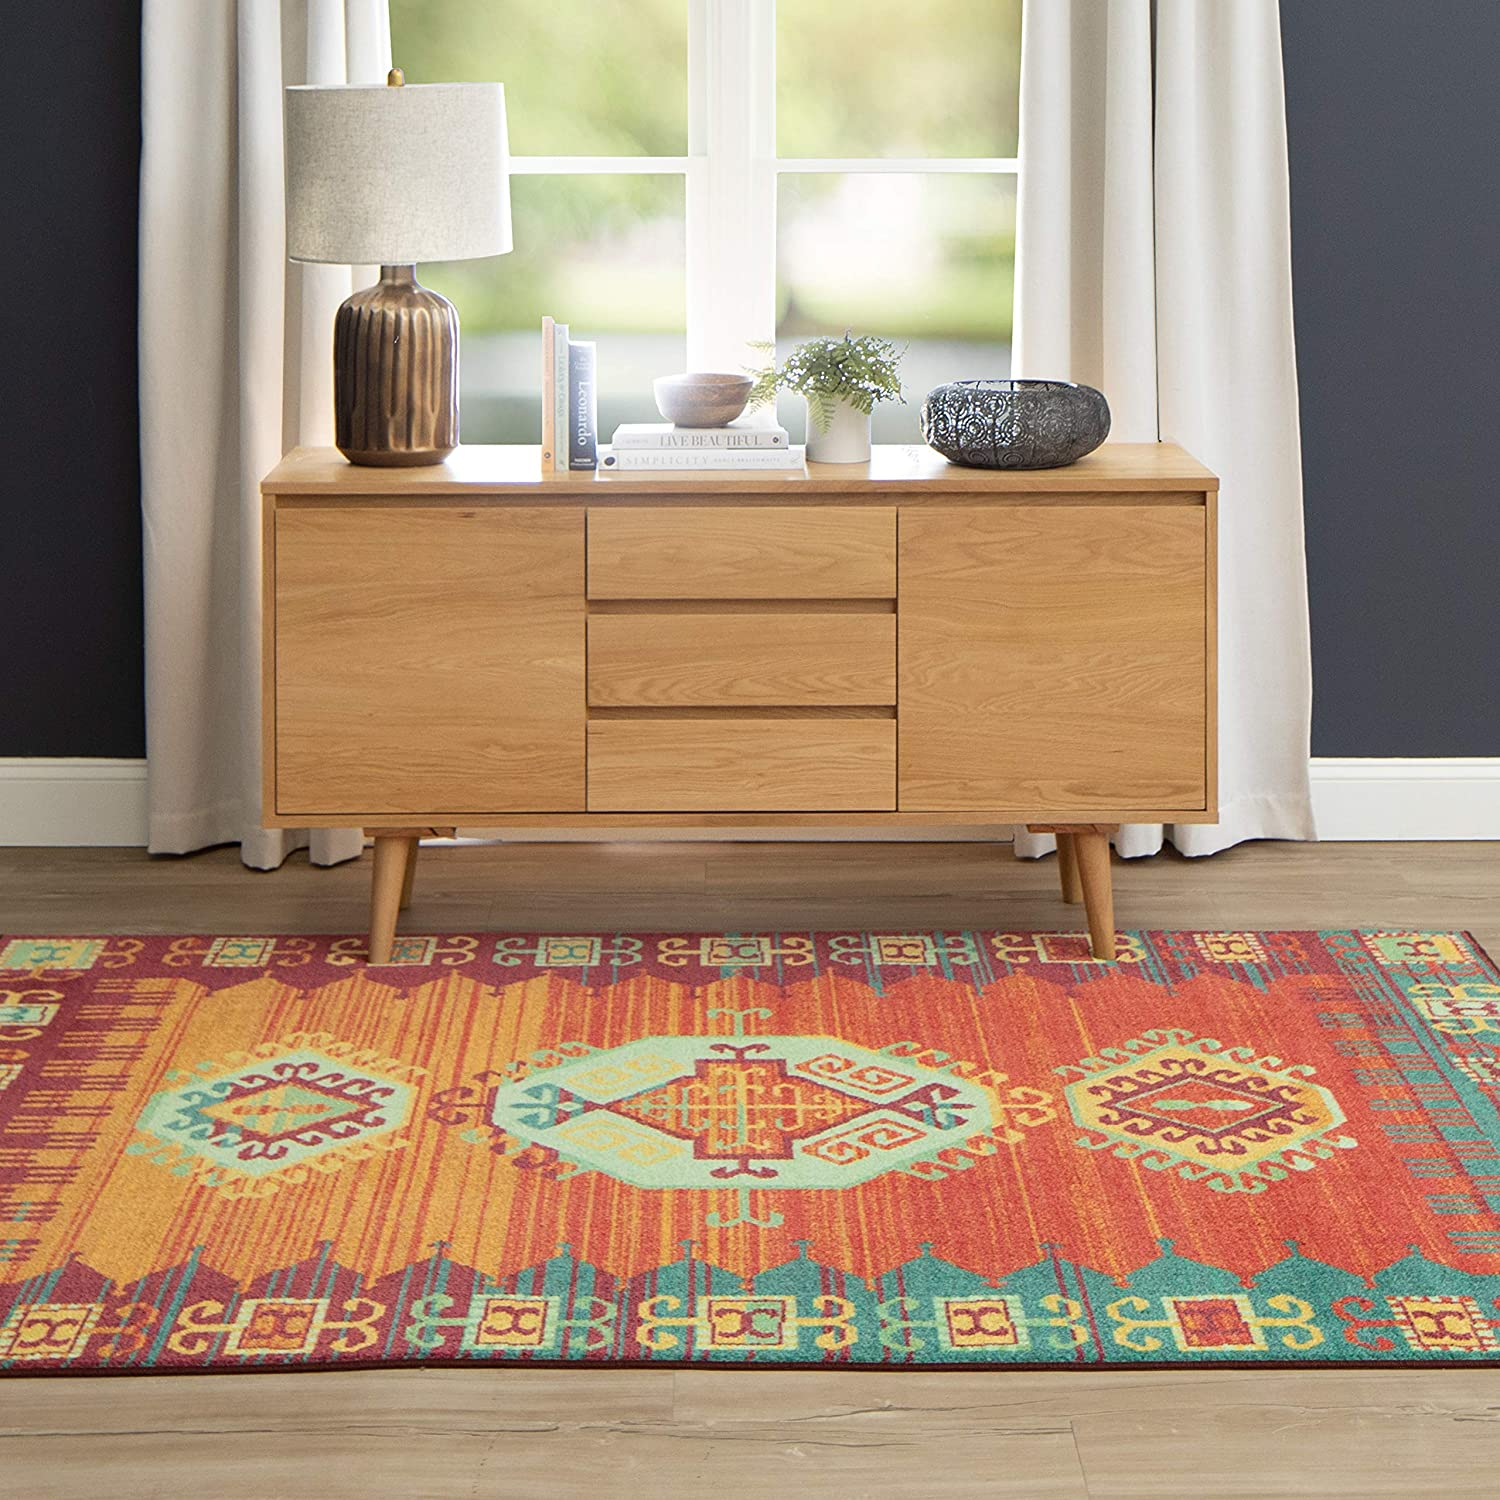 Mohawk Home Teton Precision Area Rug, Multicolor